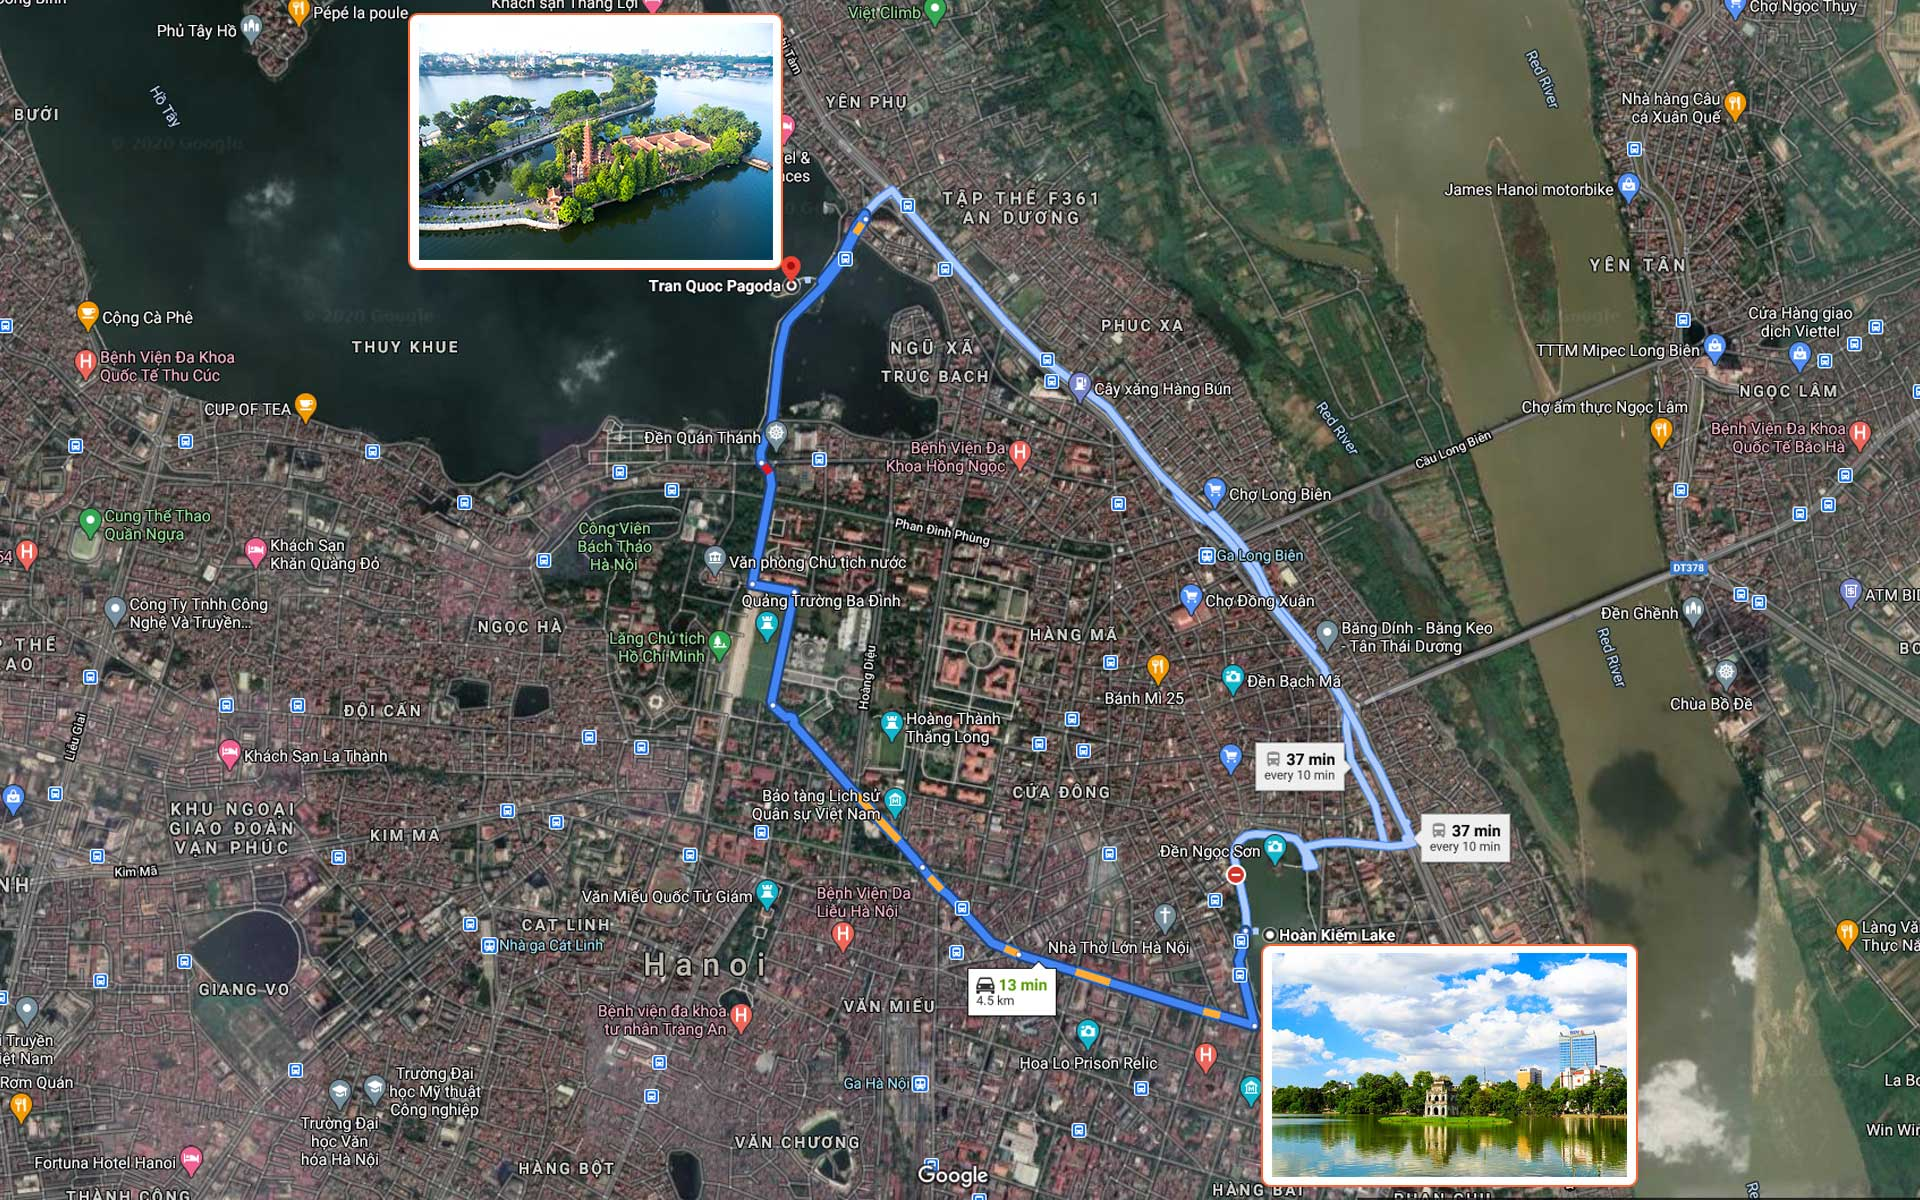 Map of route from Hoan Kiem Lake to Tran Quoc Pagoda